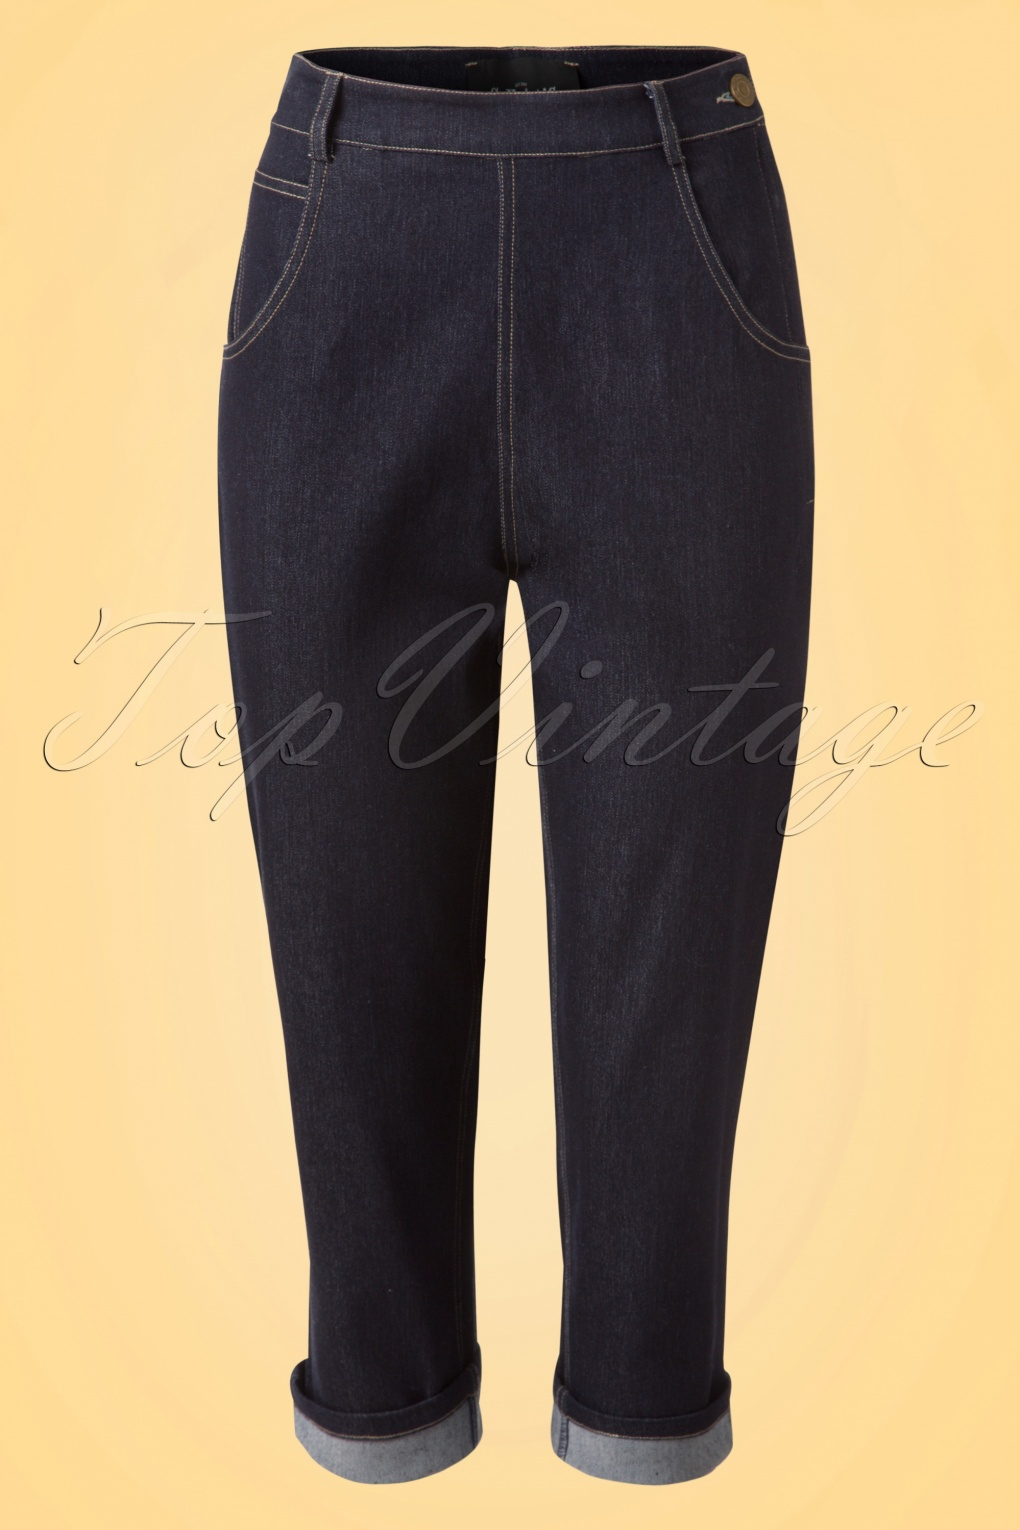 1950s Pants History for Women 50s Coco Denim Capris in Navy £47.73 AT vintagedancer.com